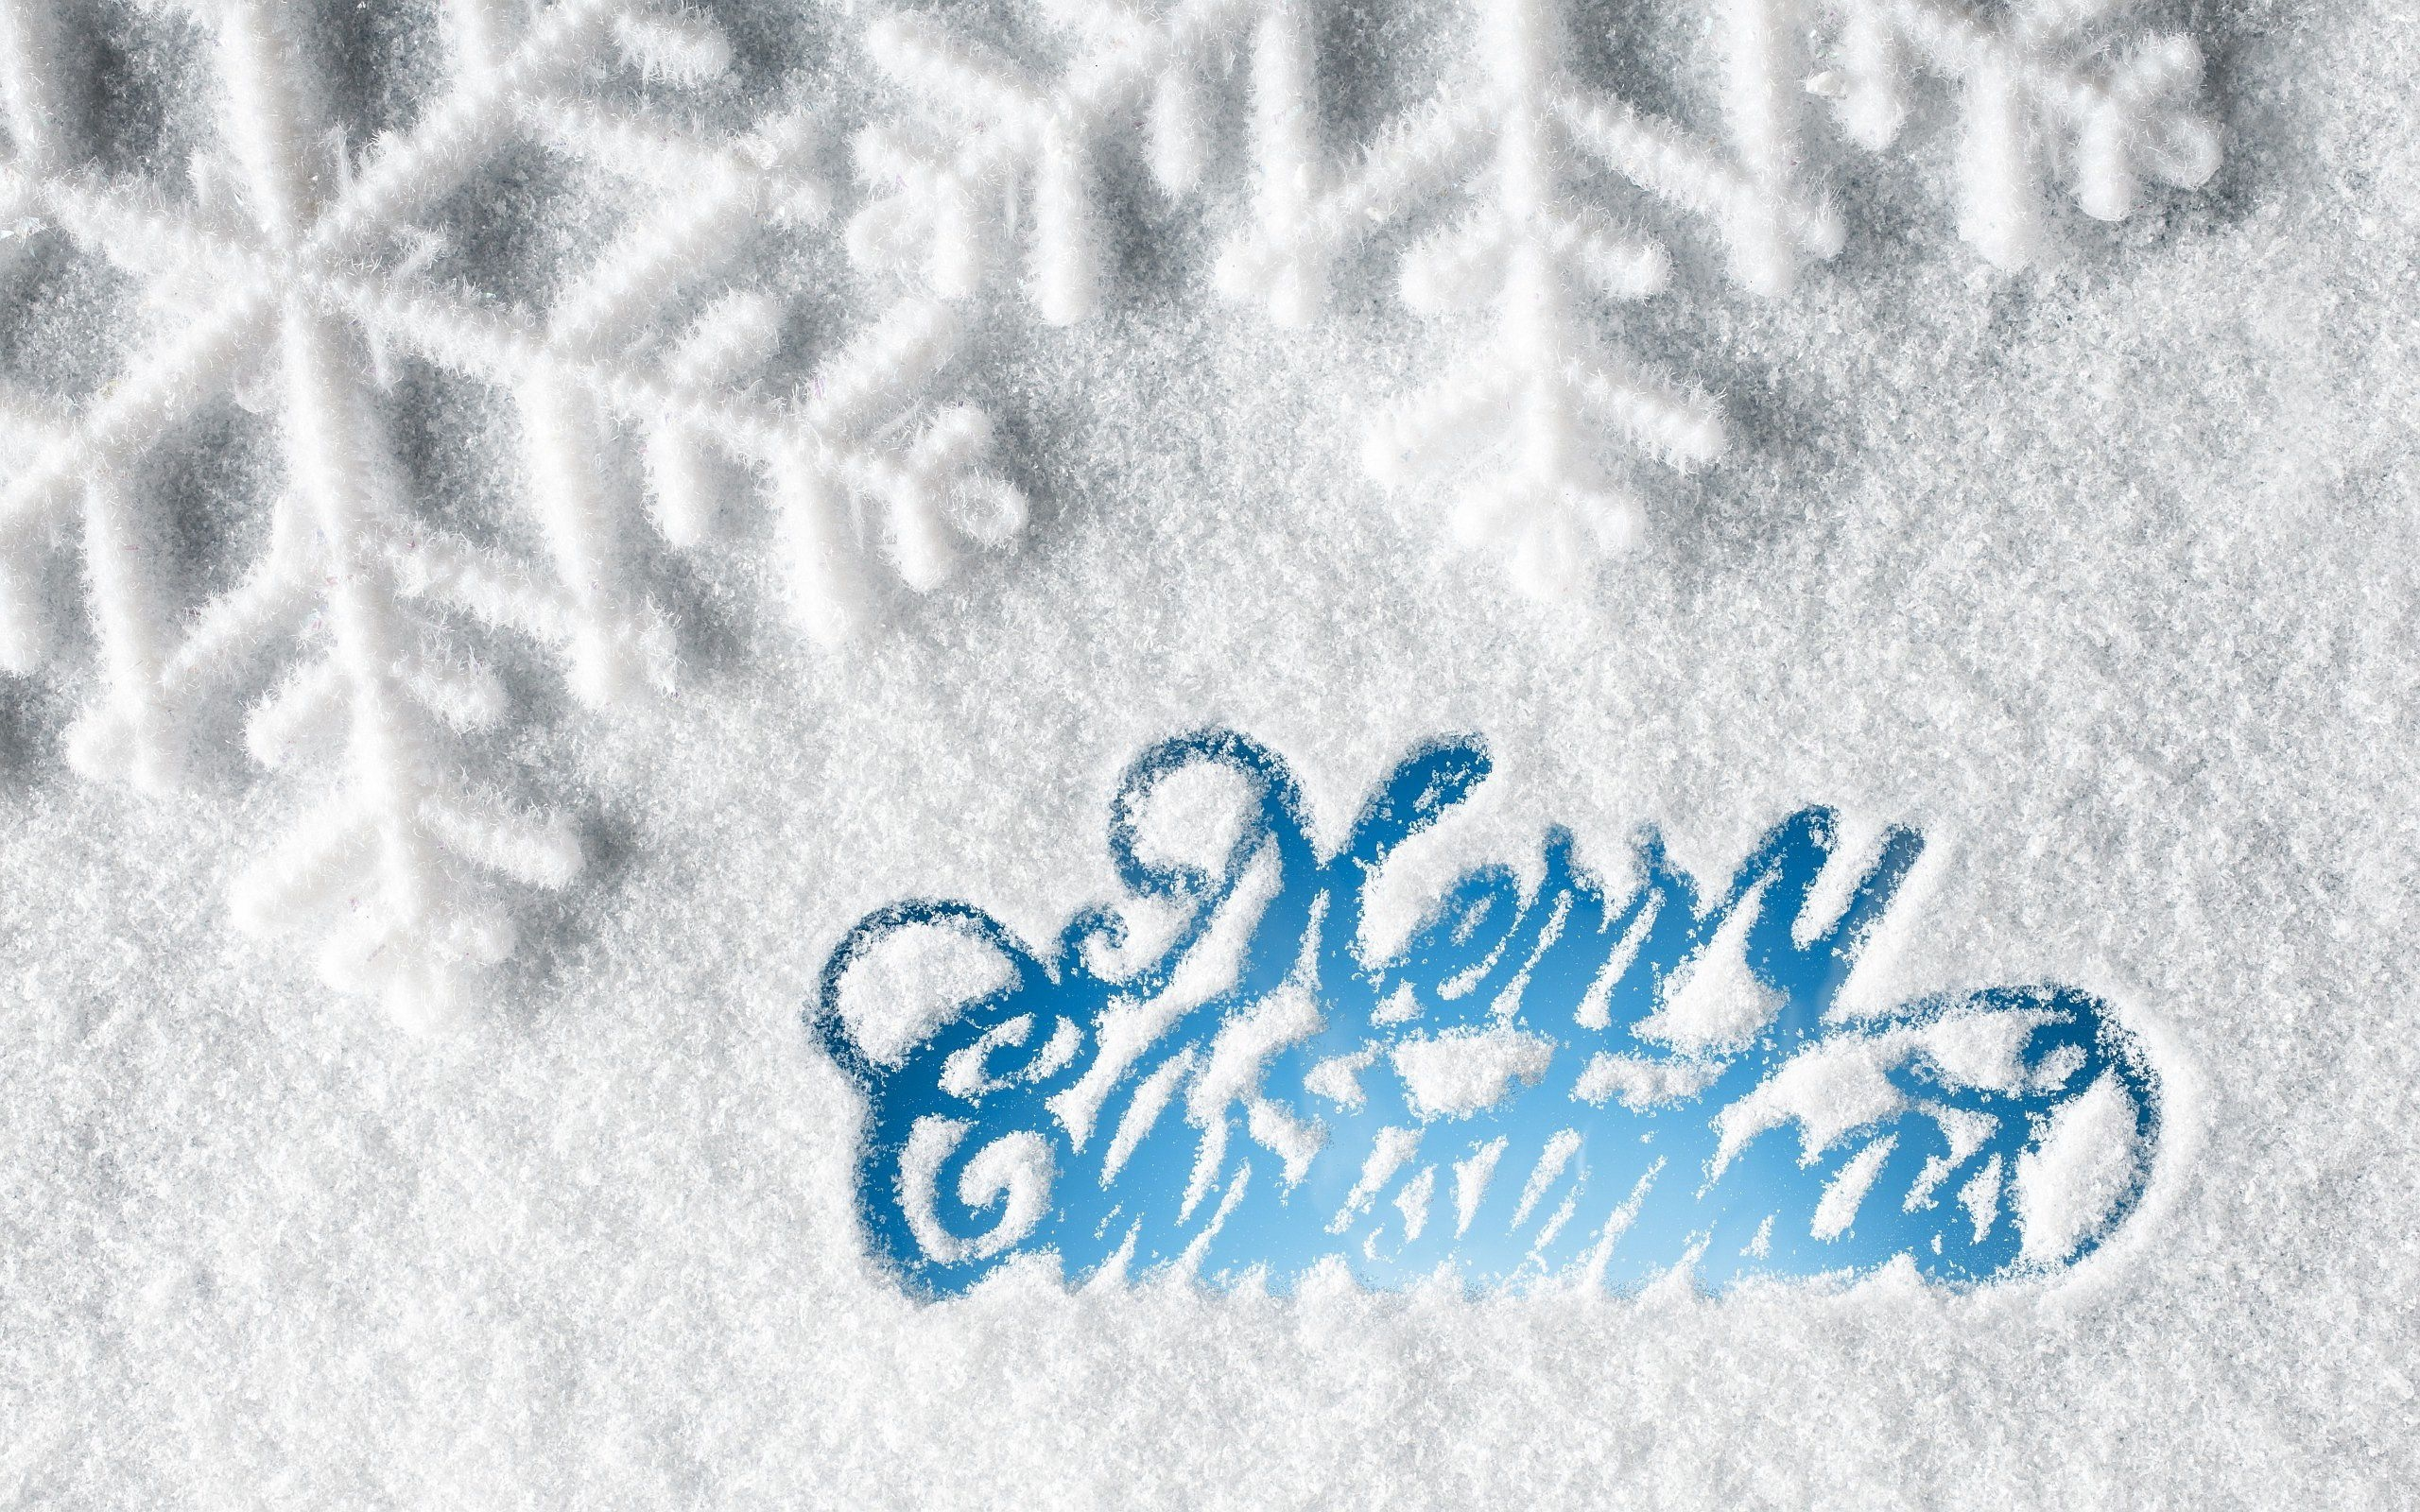 Merry Christmas Snow Wallpaper Background